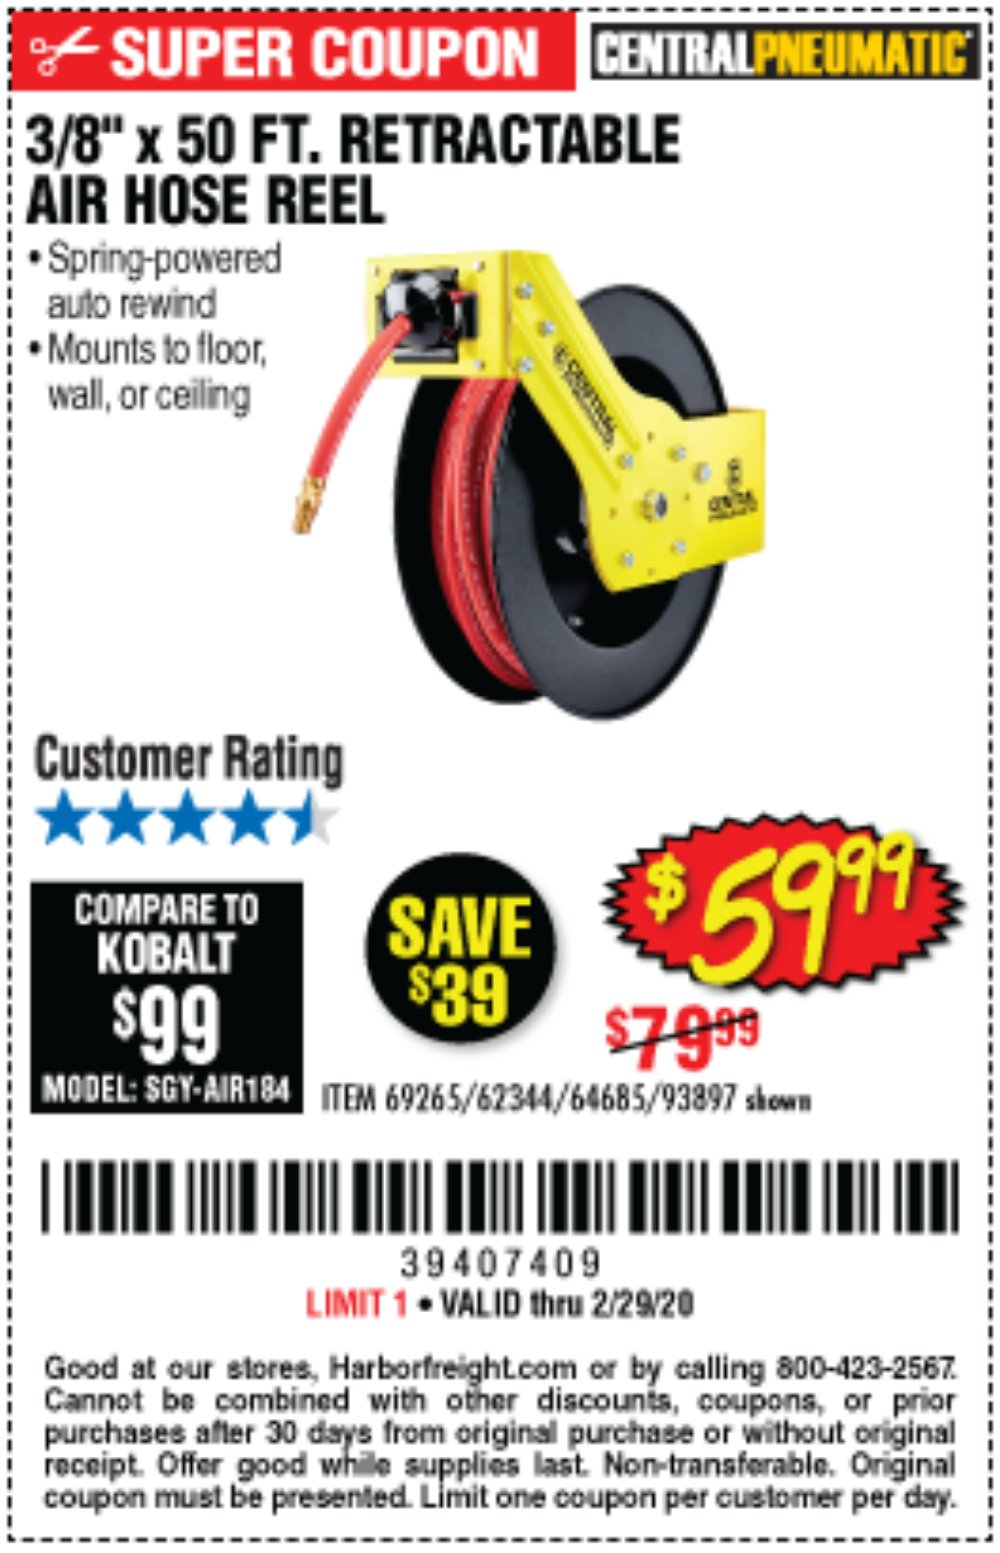 Harbor Freight Coupon, HF Coupons - 3/8